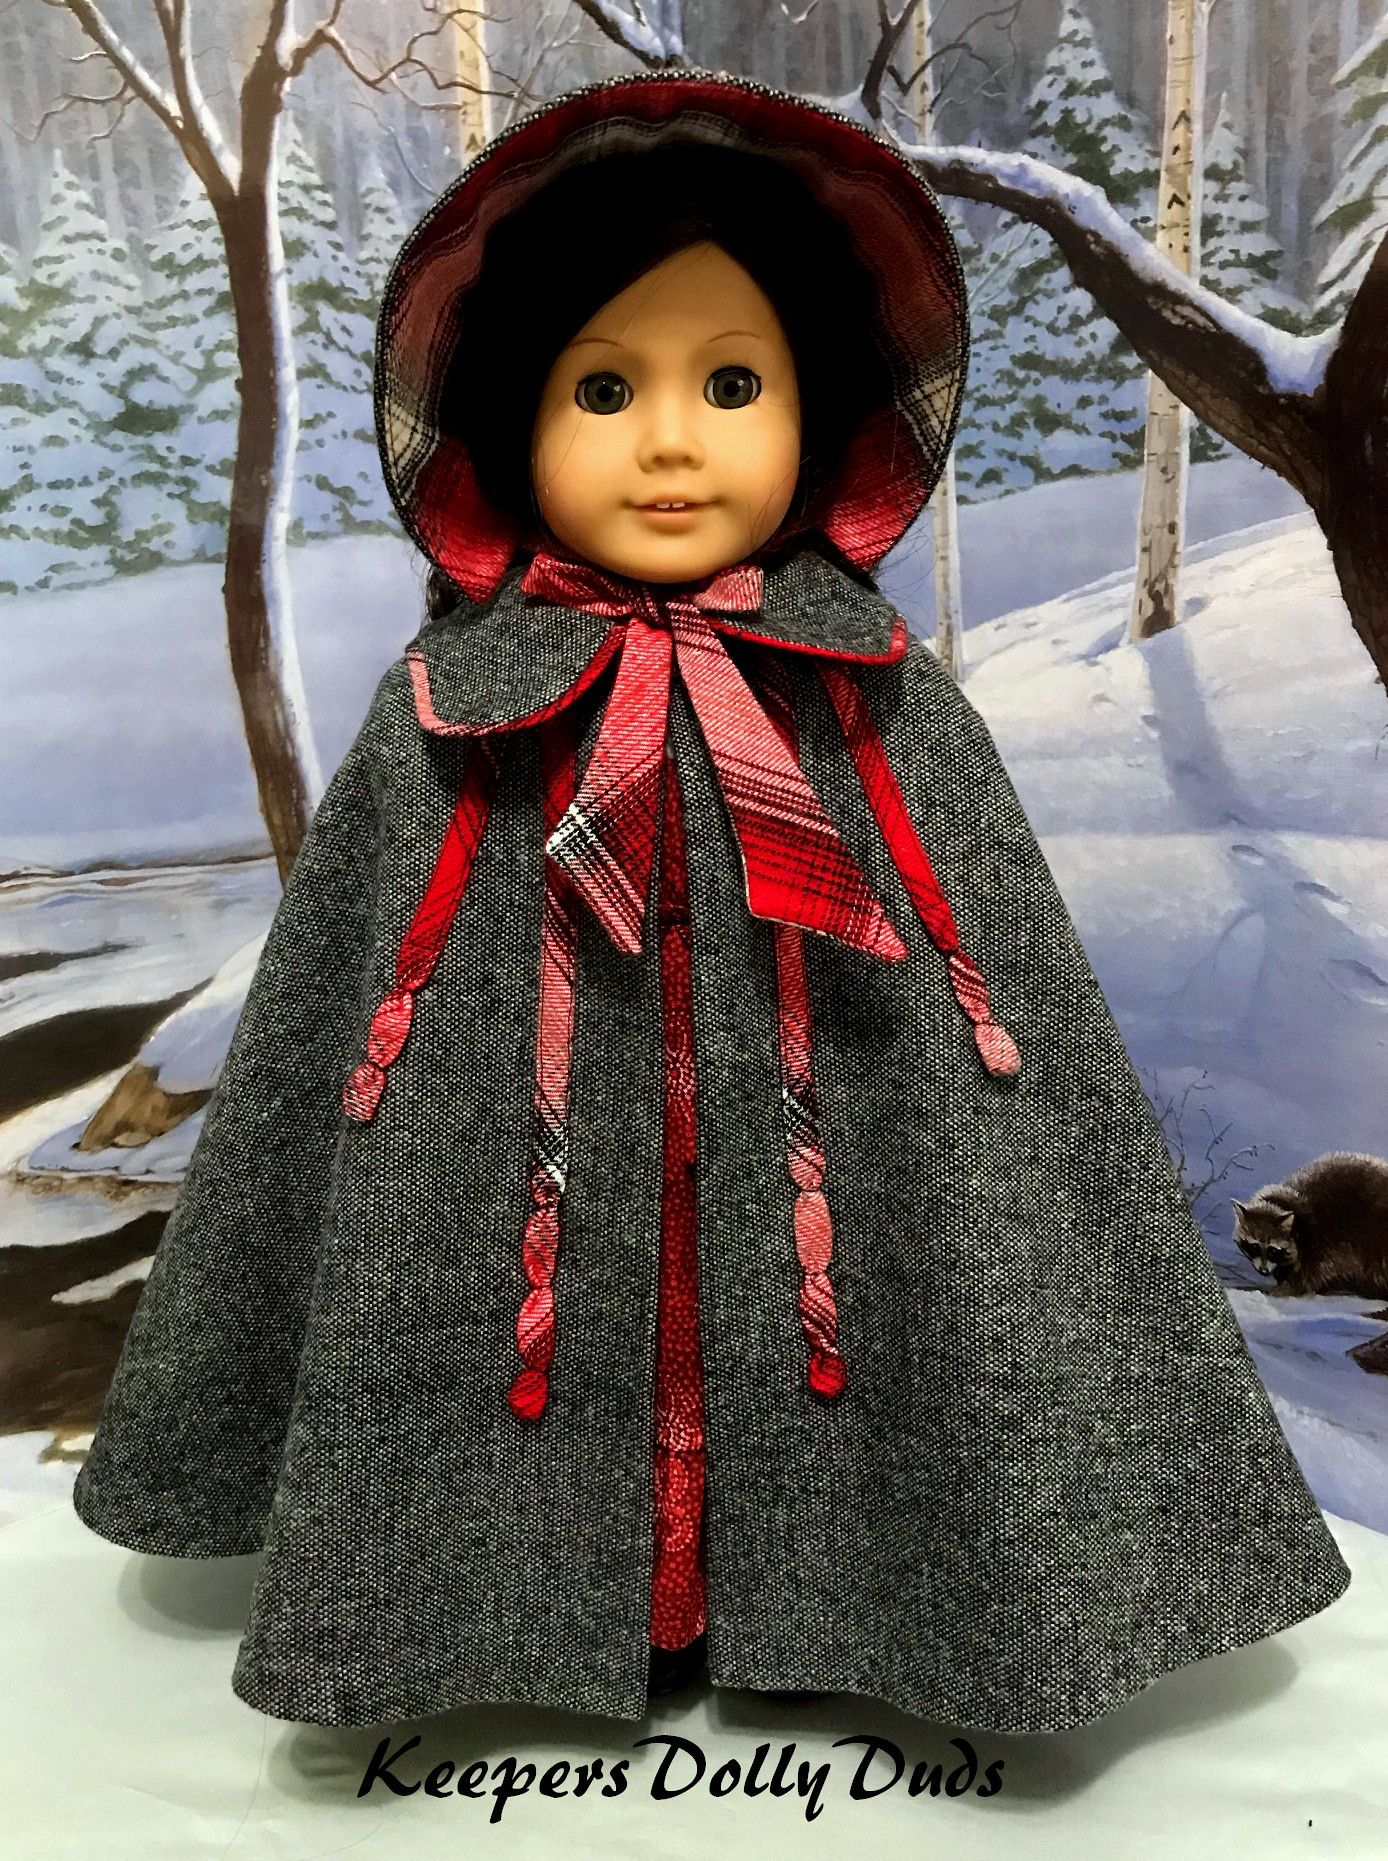 Wool Cape and Bonnet, An Original KeepersDollyDuds Design #dollclothes